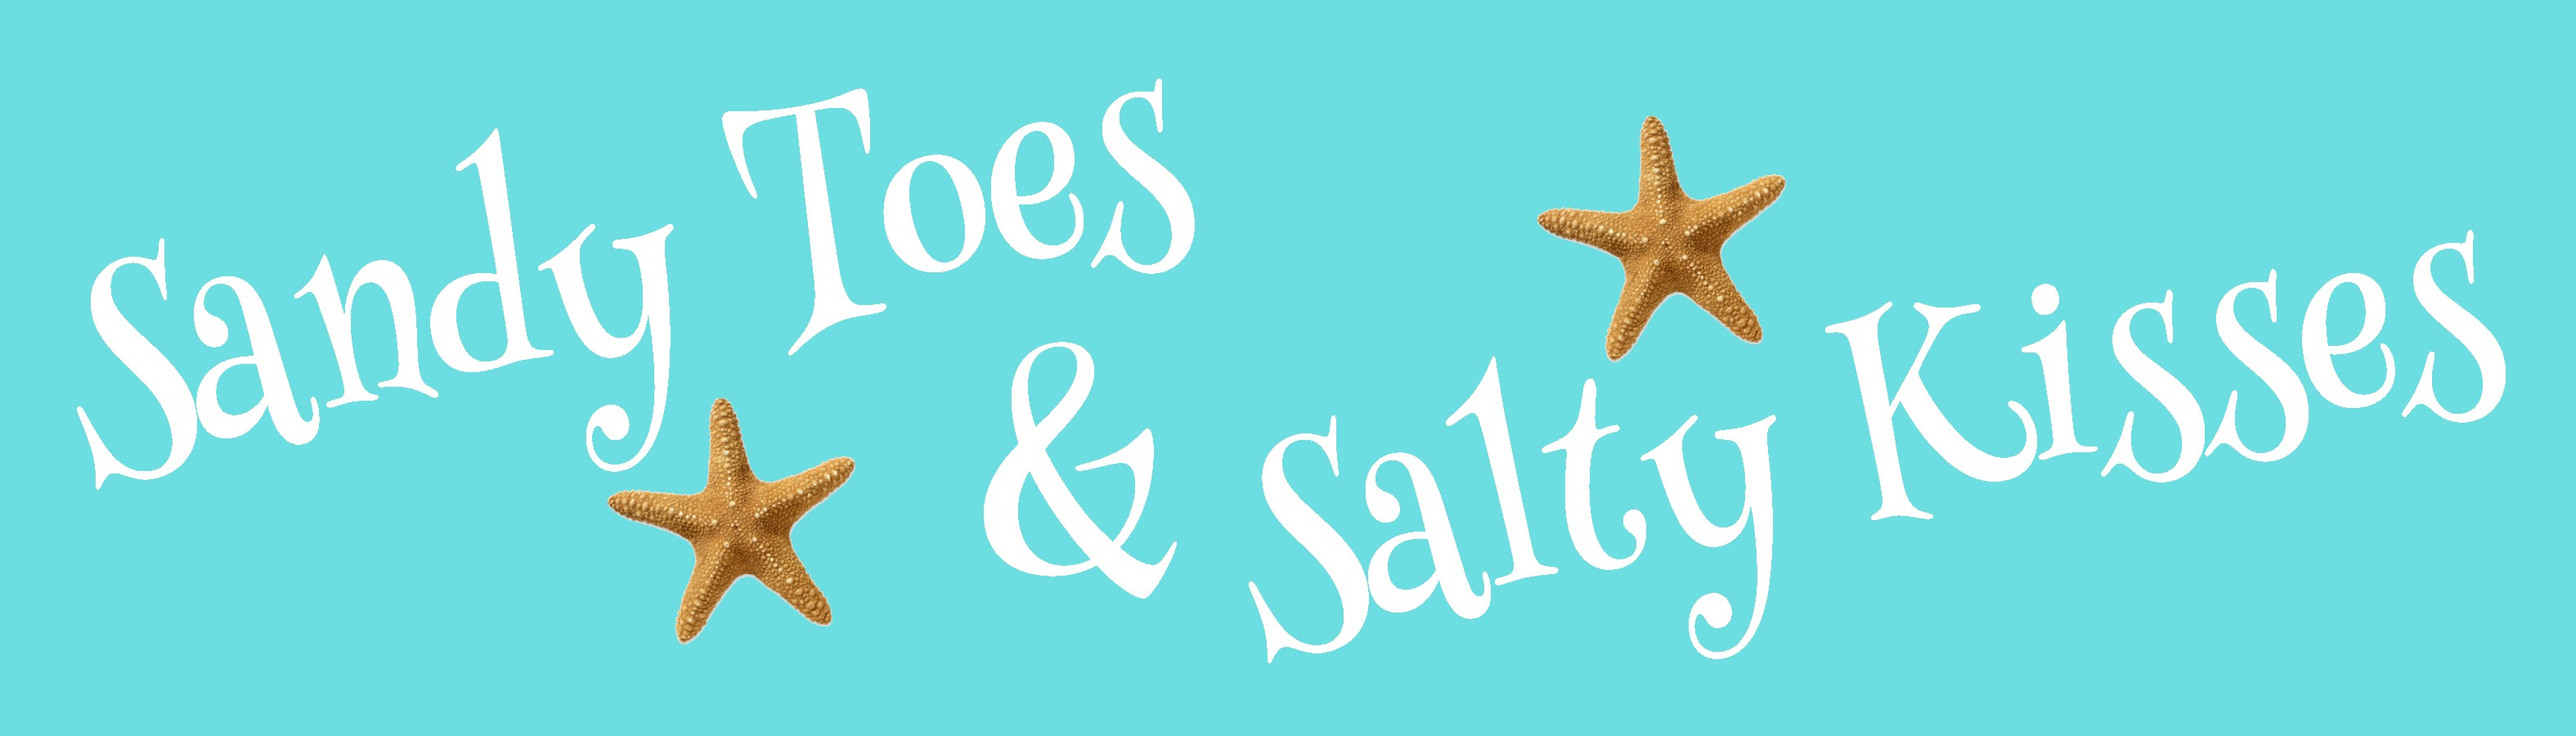 "SANDY TOES & SALTY KISSES 10.5"" X 3"" WOODEN BLOCK SIGN"